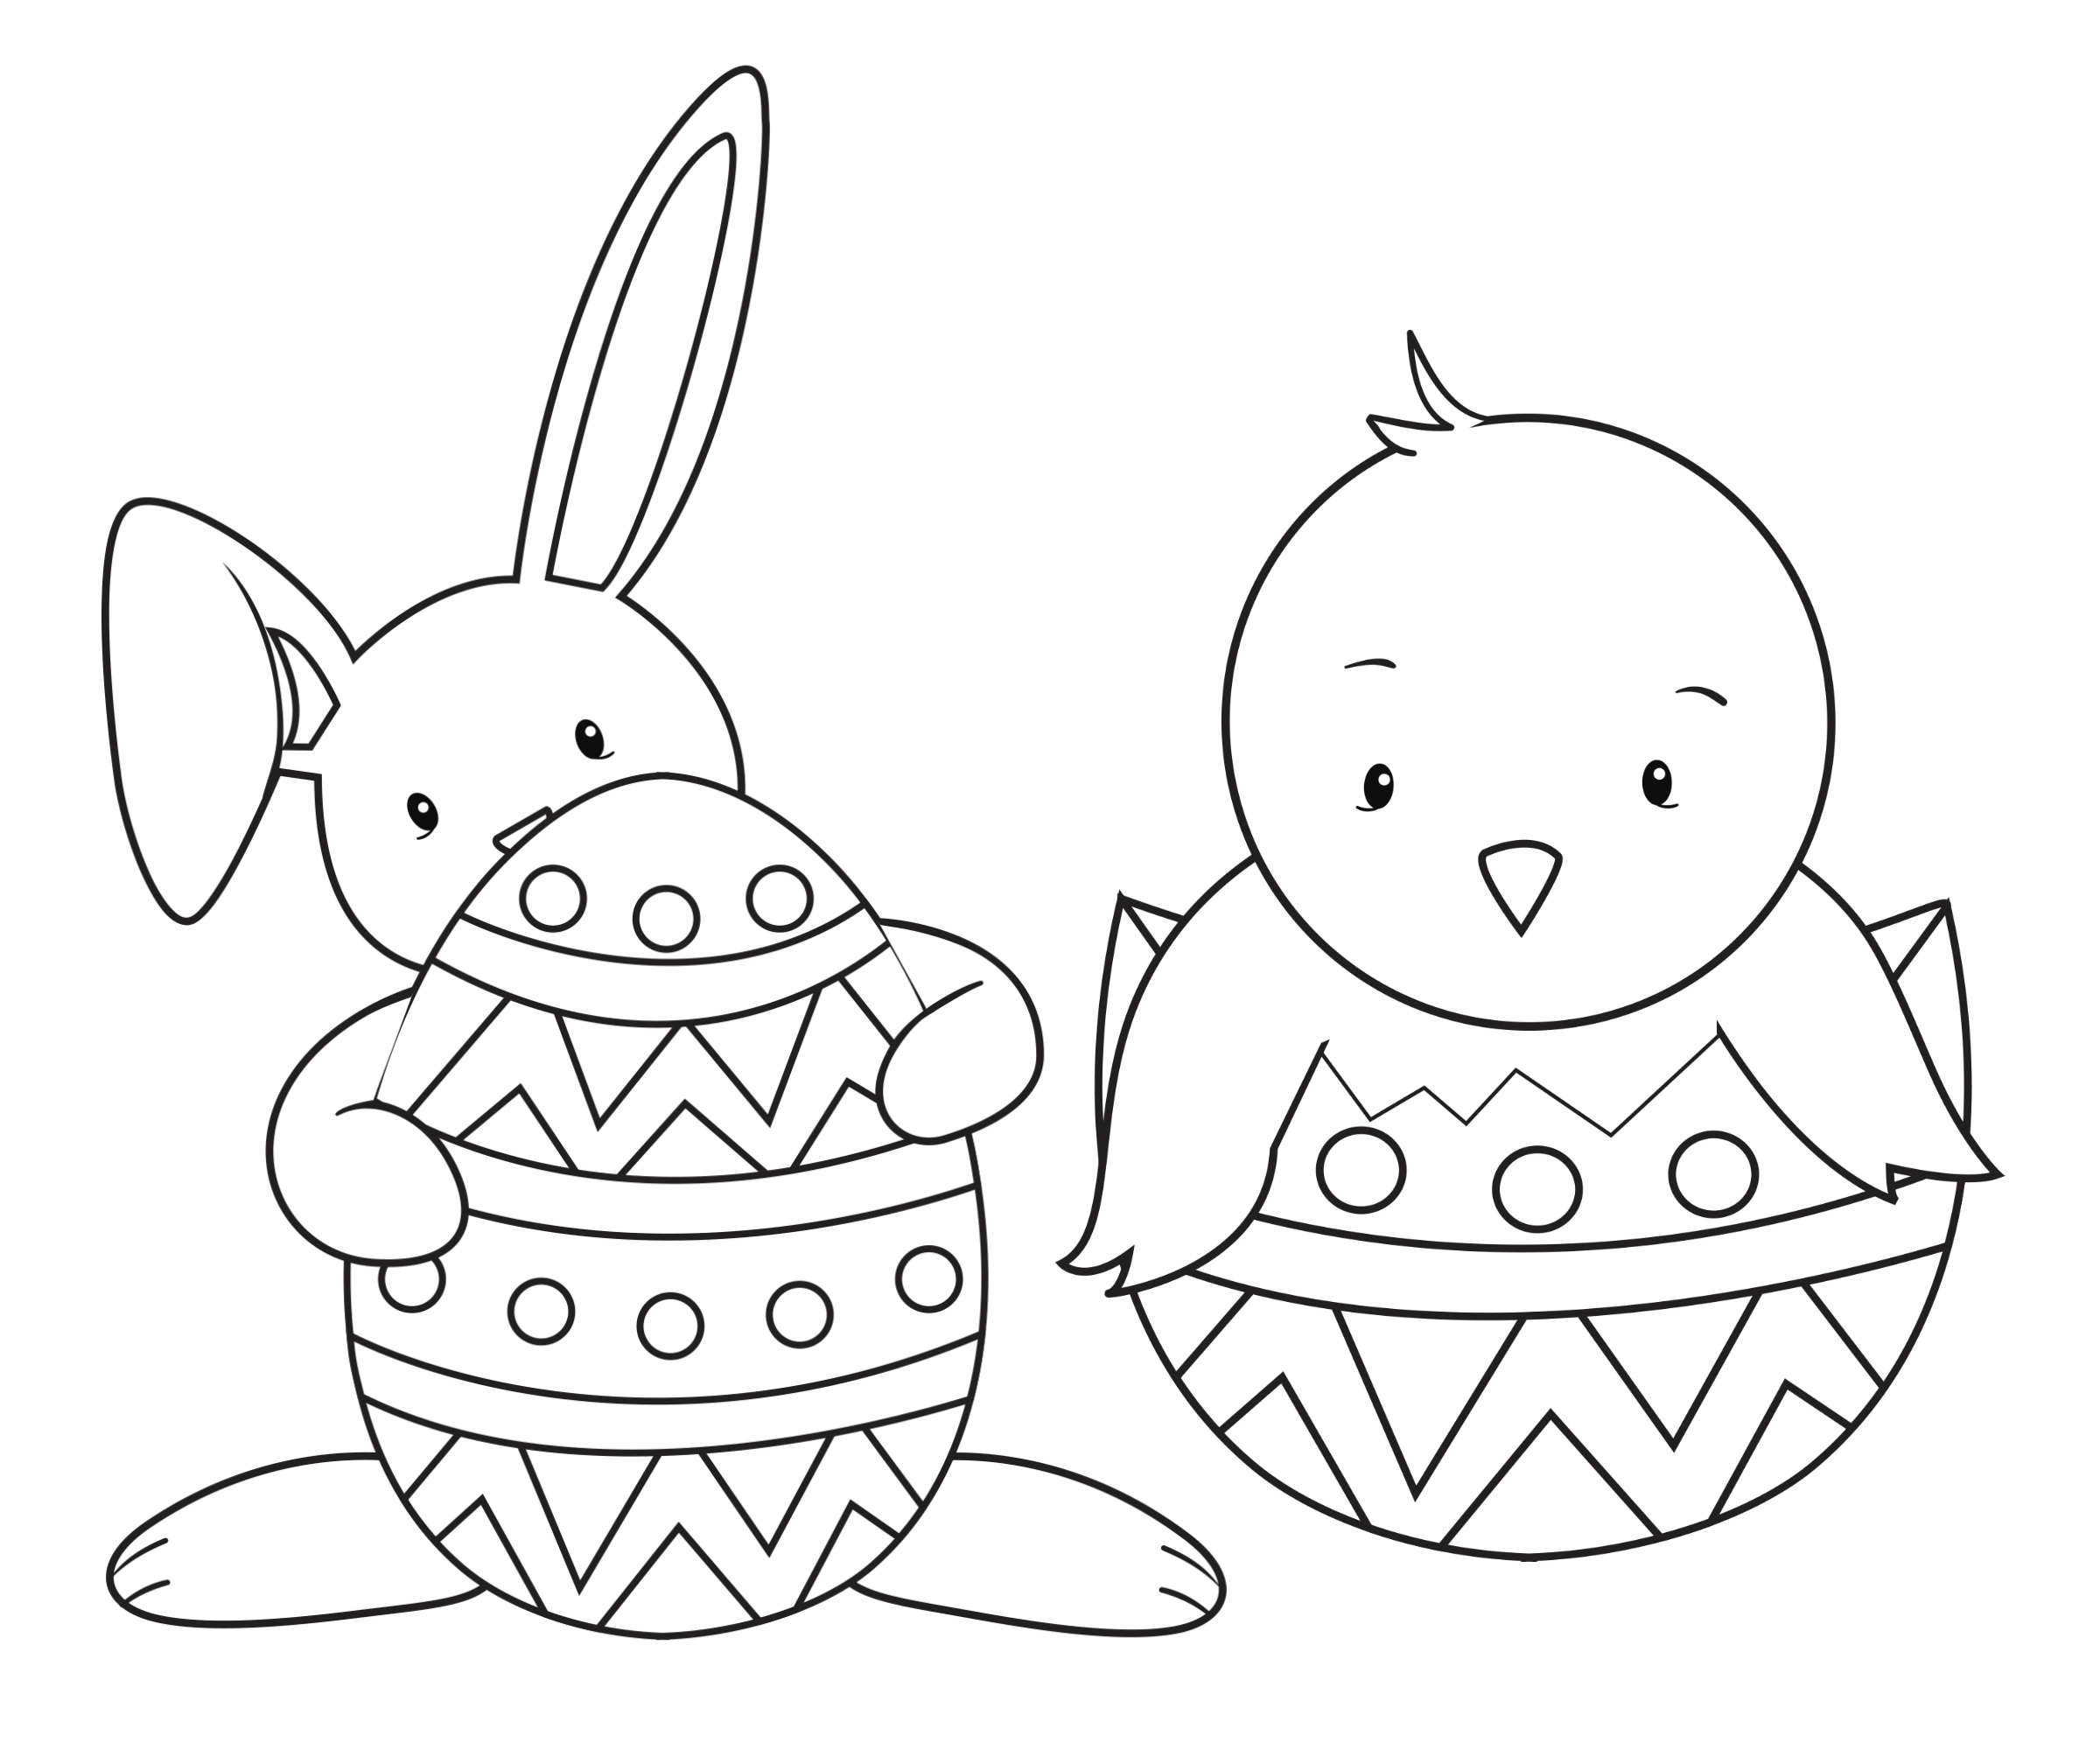 easter animals coloring pages - Coloring Pages Of Easter Eggs